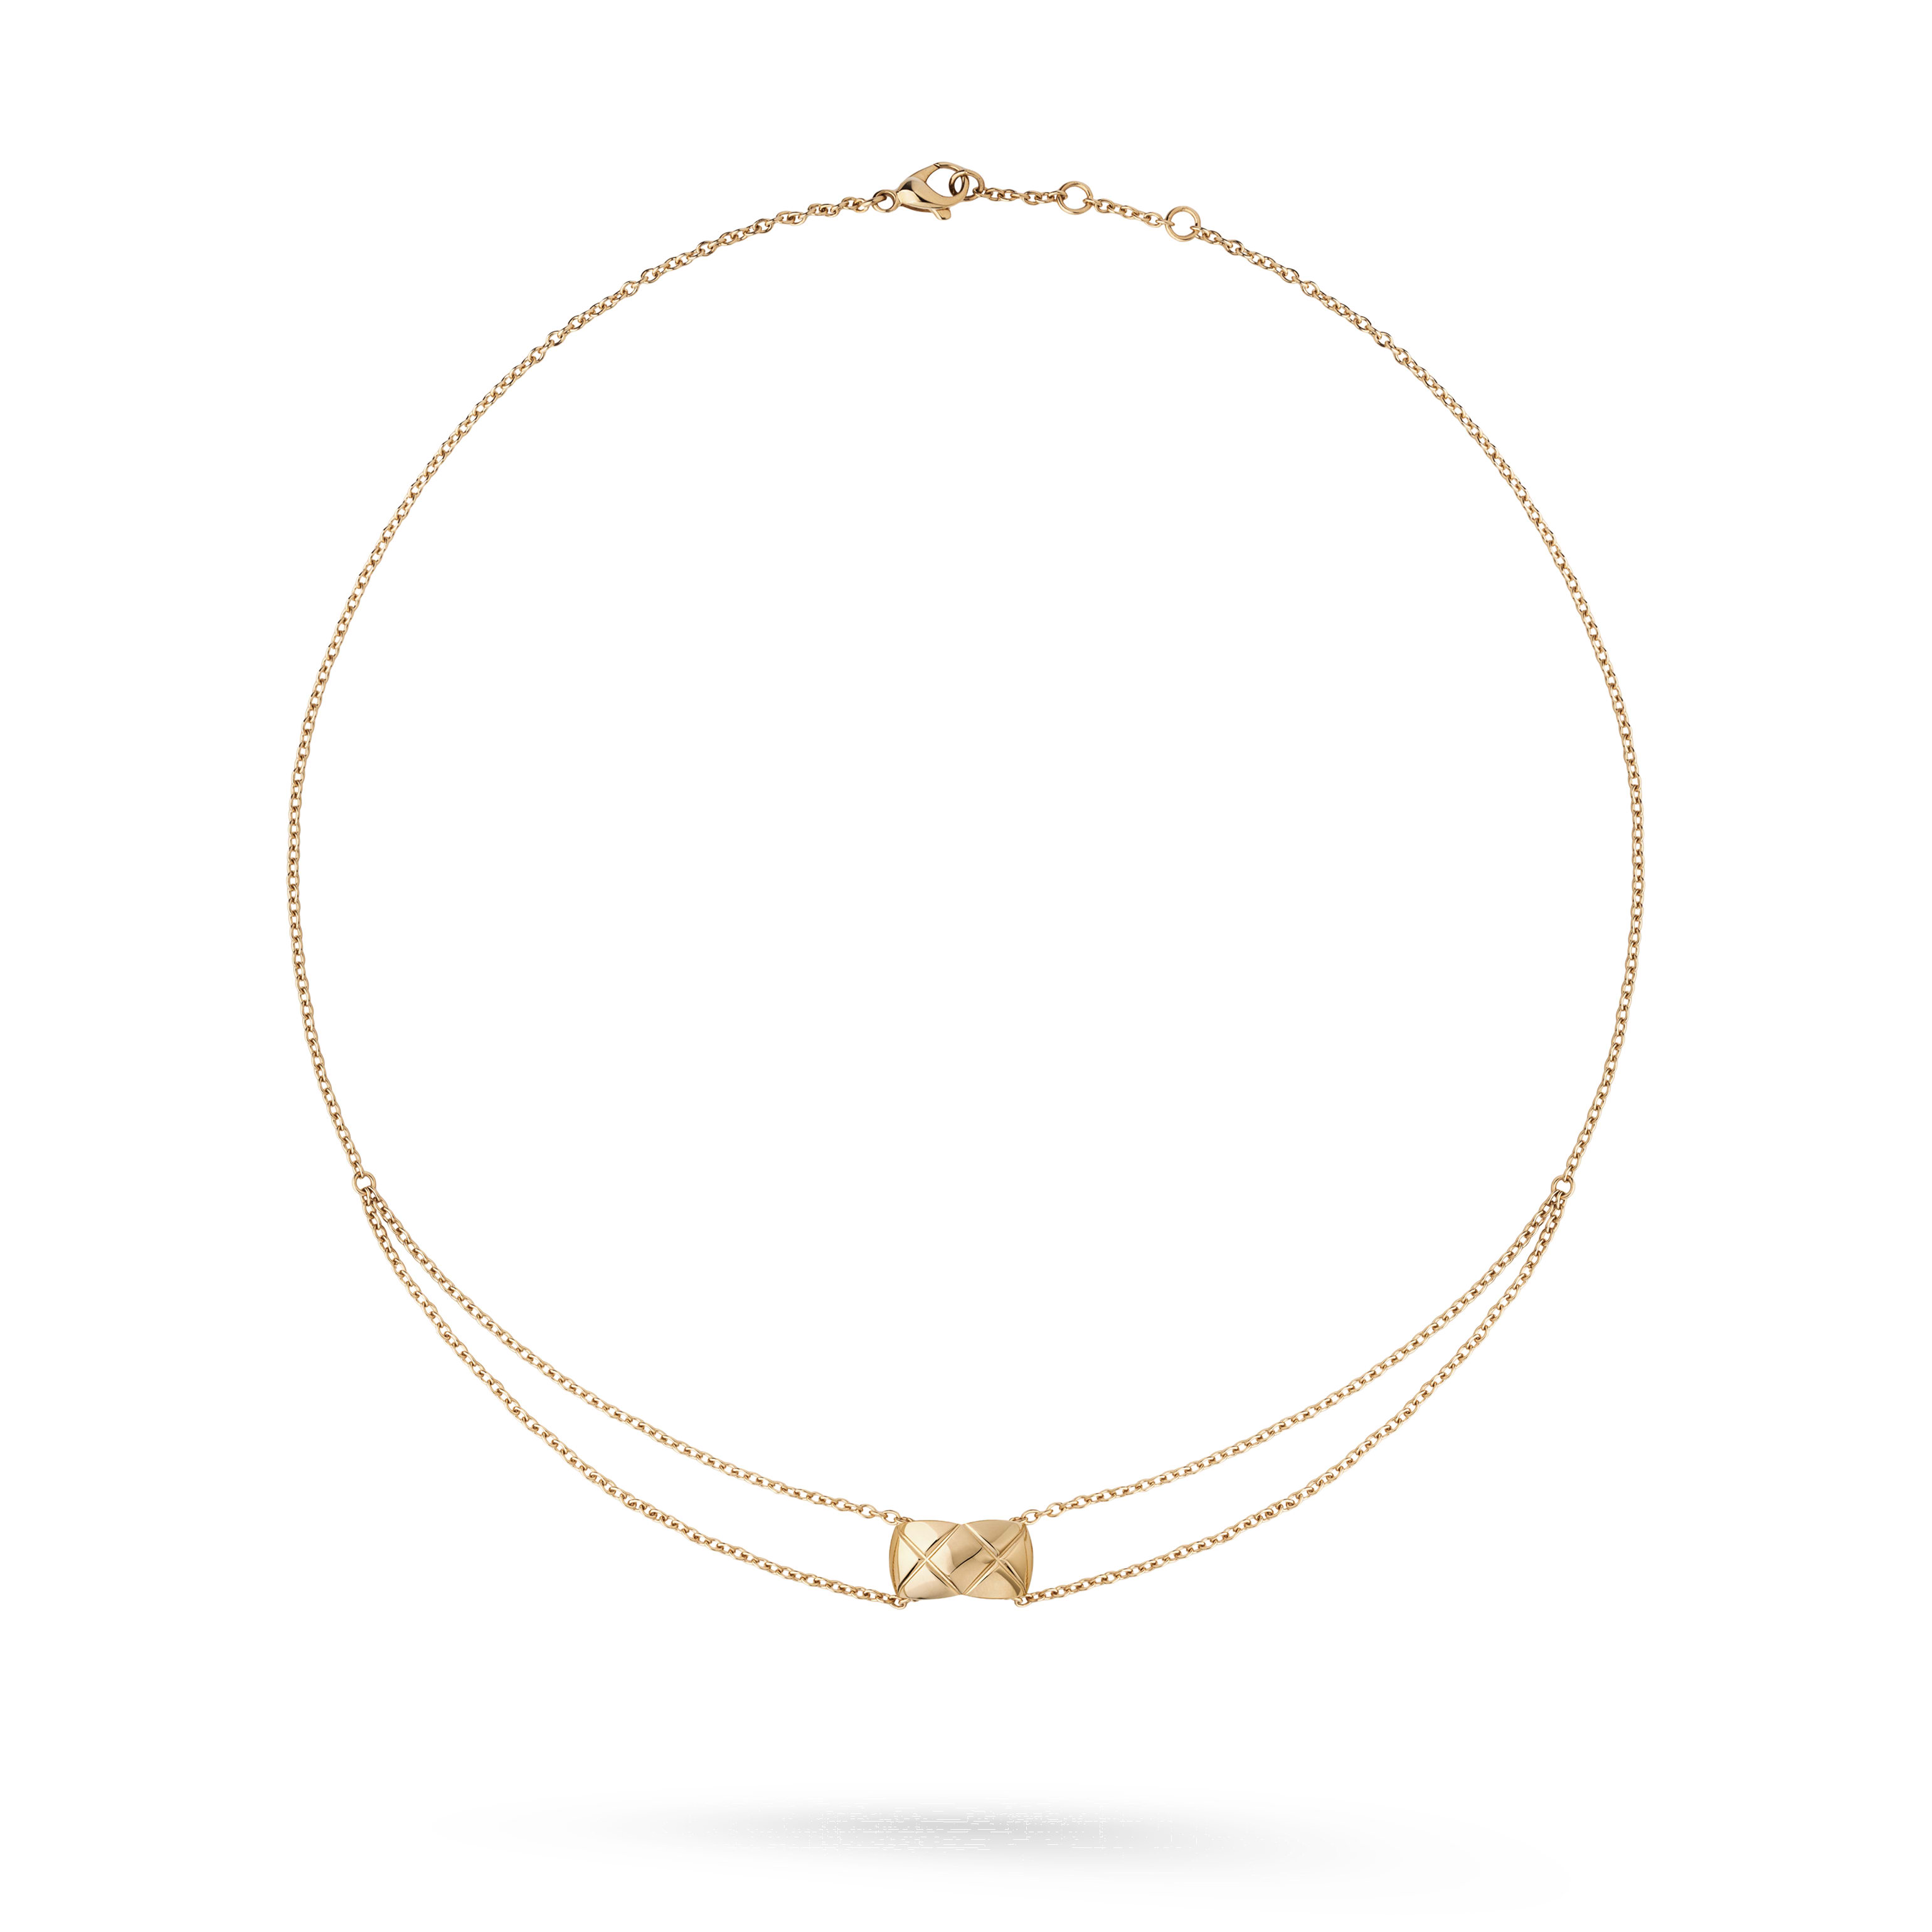 Coco Crush necklace - Quilted motif, 18K BEIGE GOLD - CHANEL - Default view - see standard sized version